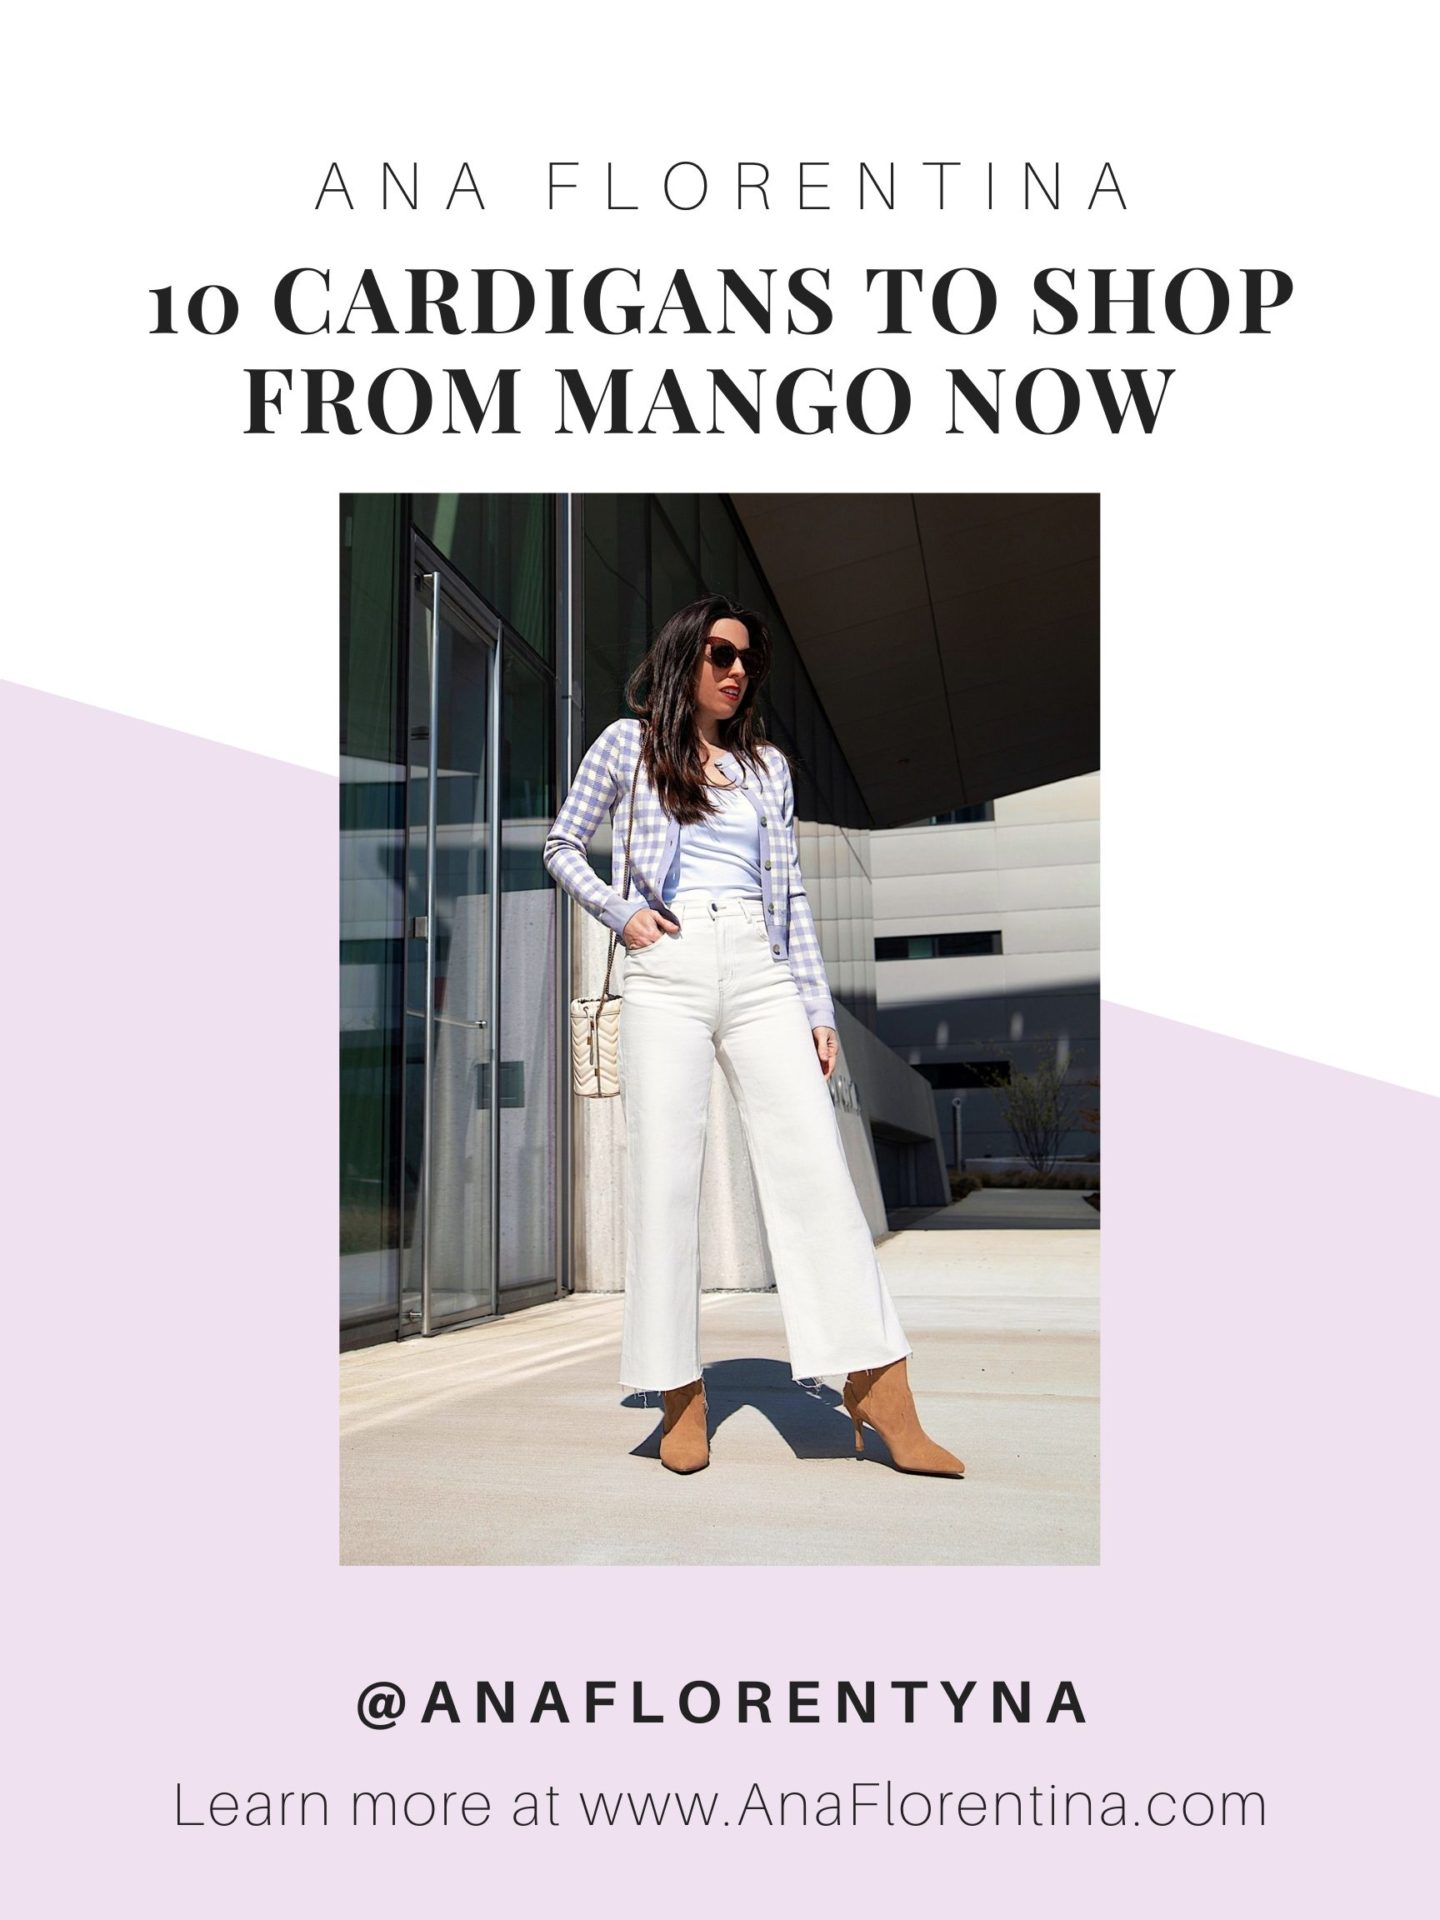 10 cardigans to shop from mango right now